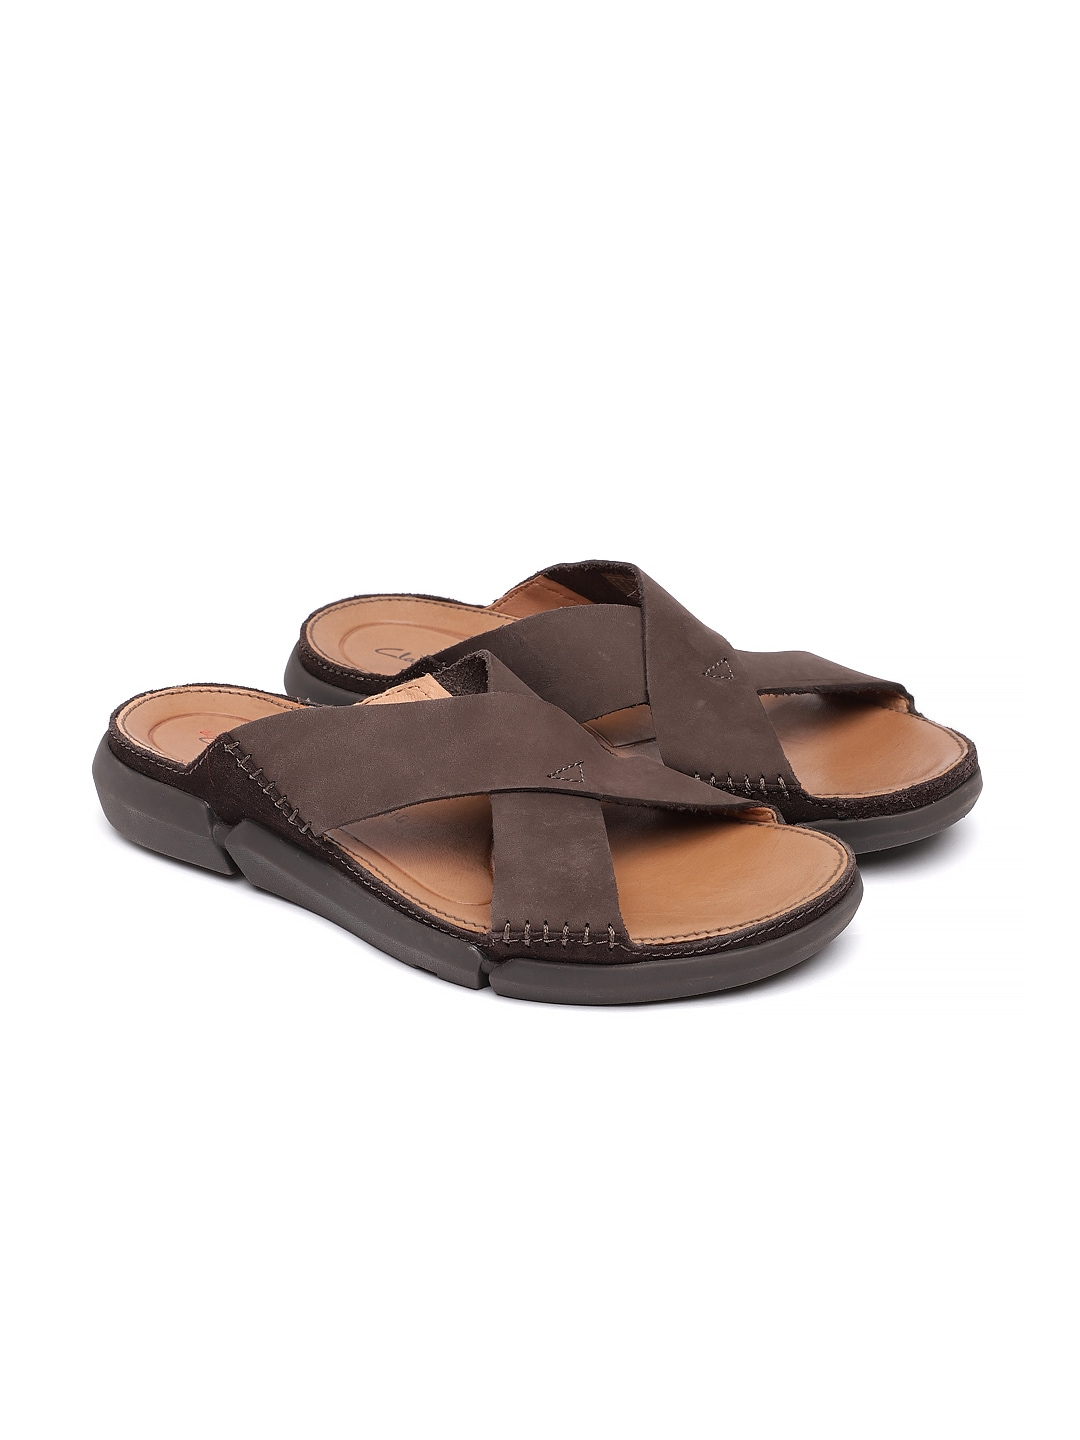 cc7a2cd4e7fe Clarks Sandals - Buy Clarks Sandals Online in India - Myntra